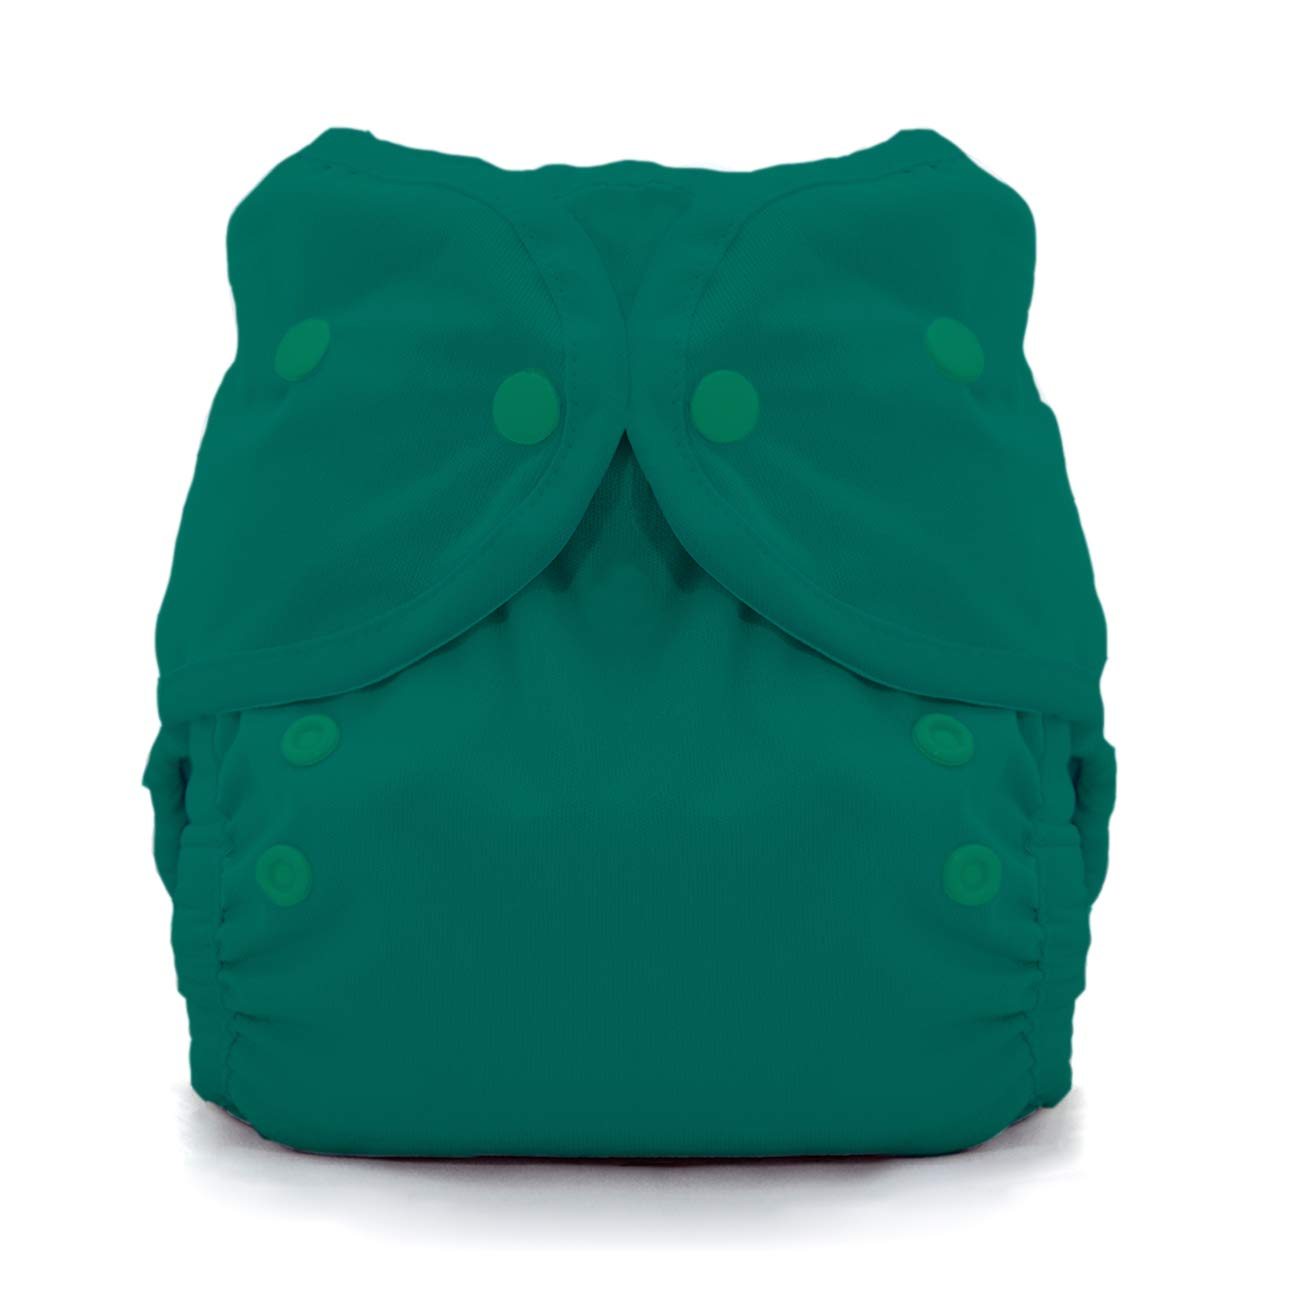 Thirsties Duo Wrap Cloth Diaper Cover, Snap Closure, Lagoon Size One (6-18 lbs)